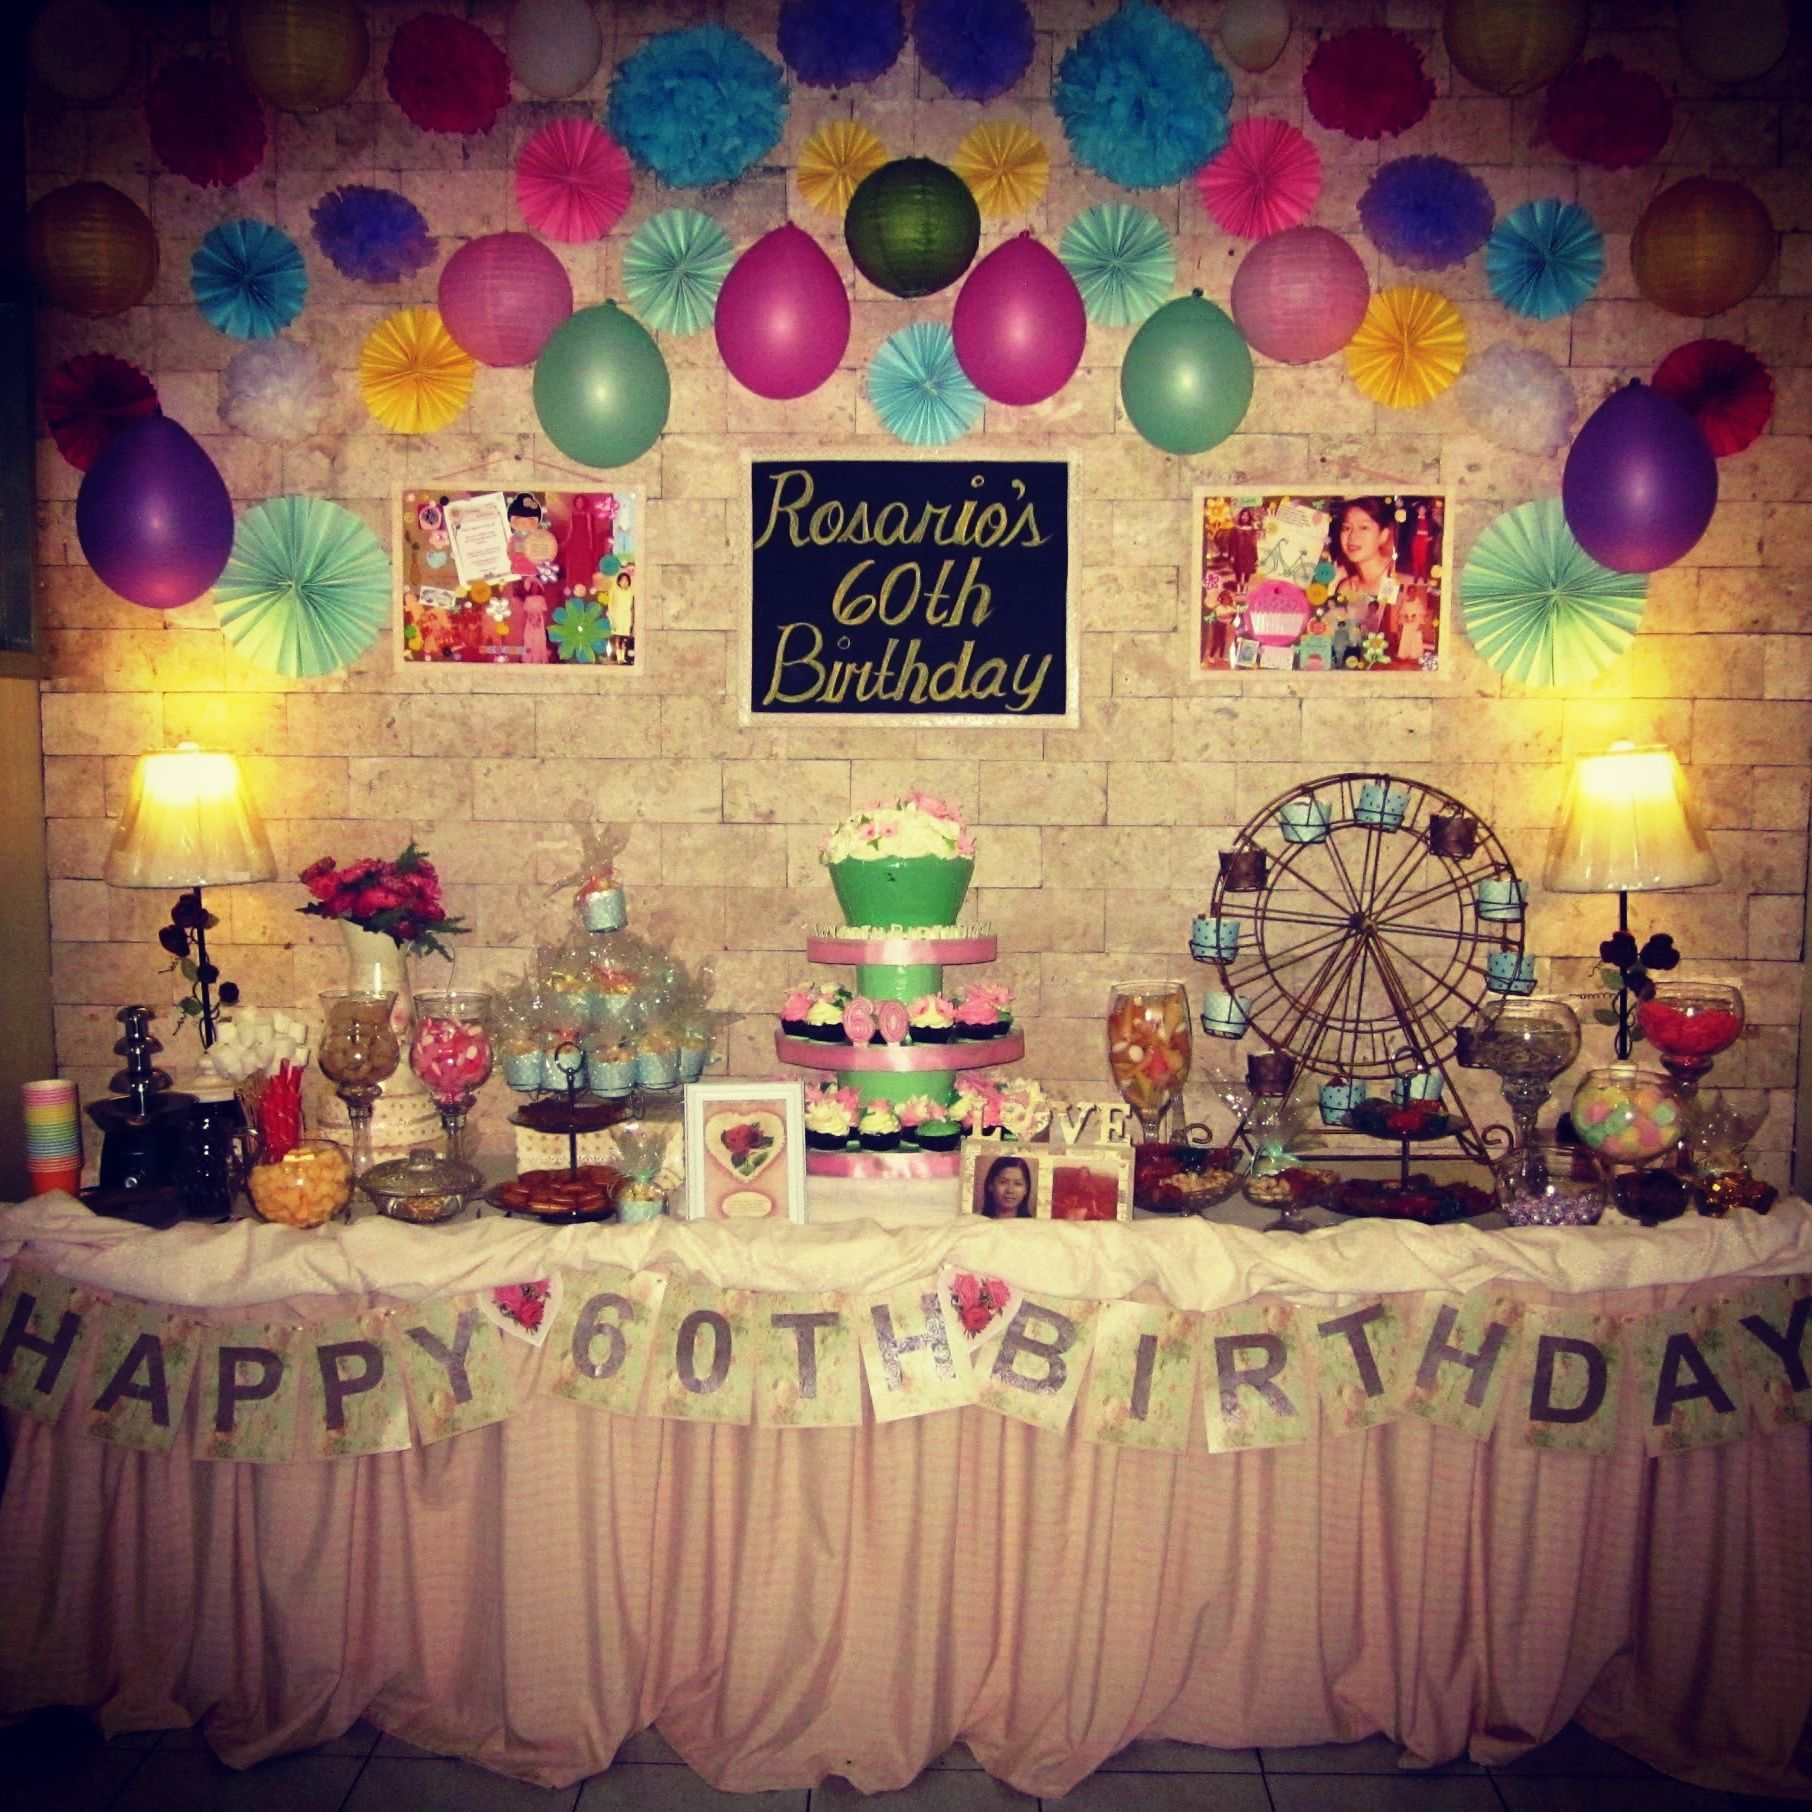 Marvelous Games For 60Th Birthday Party Ideas 60th Mom Plus Mum Gift